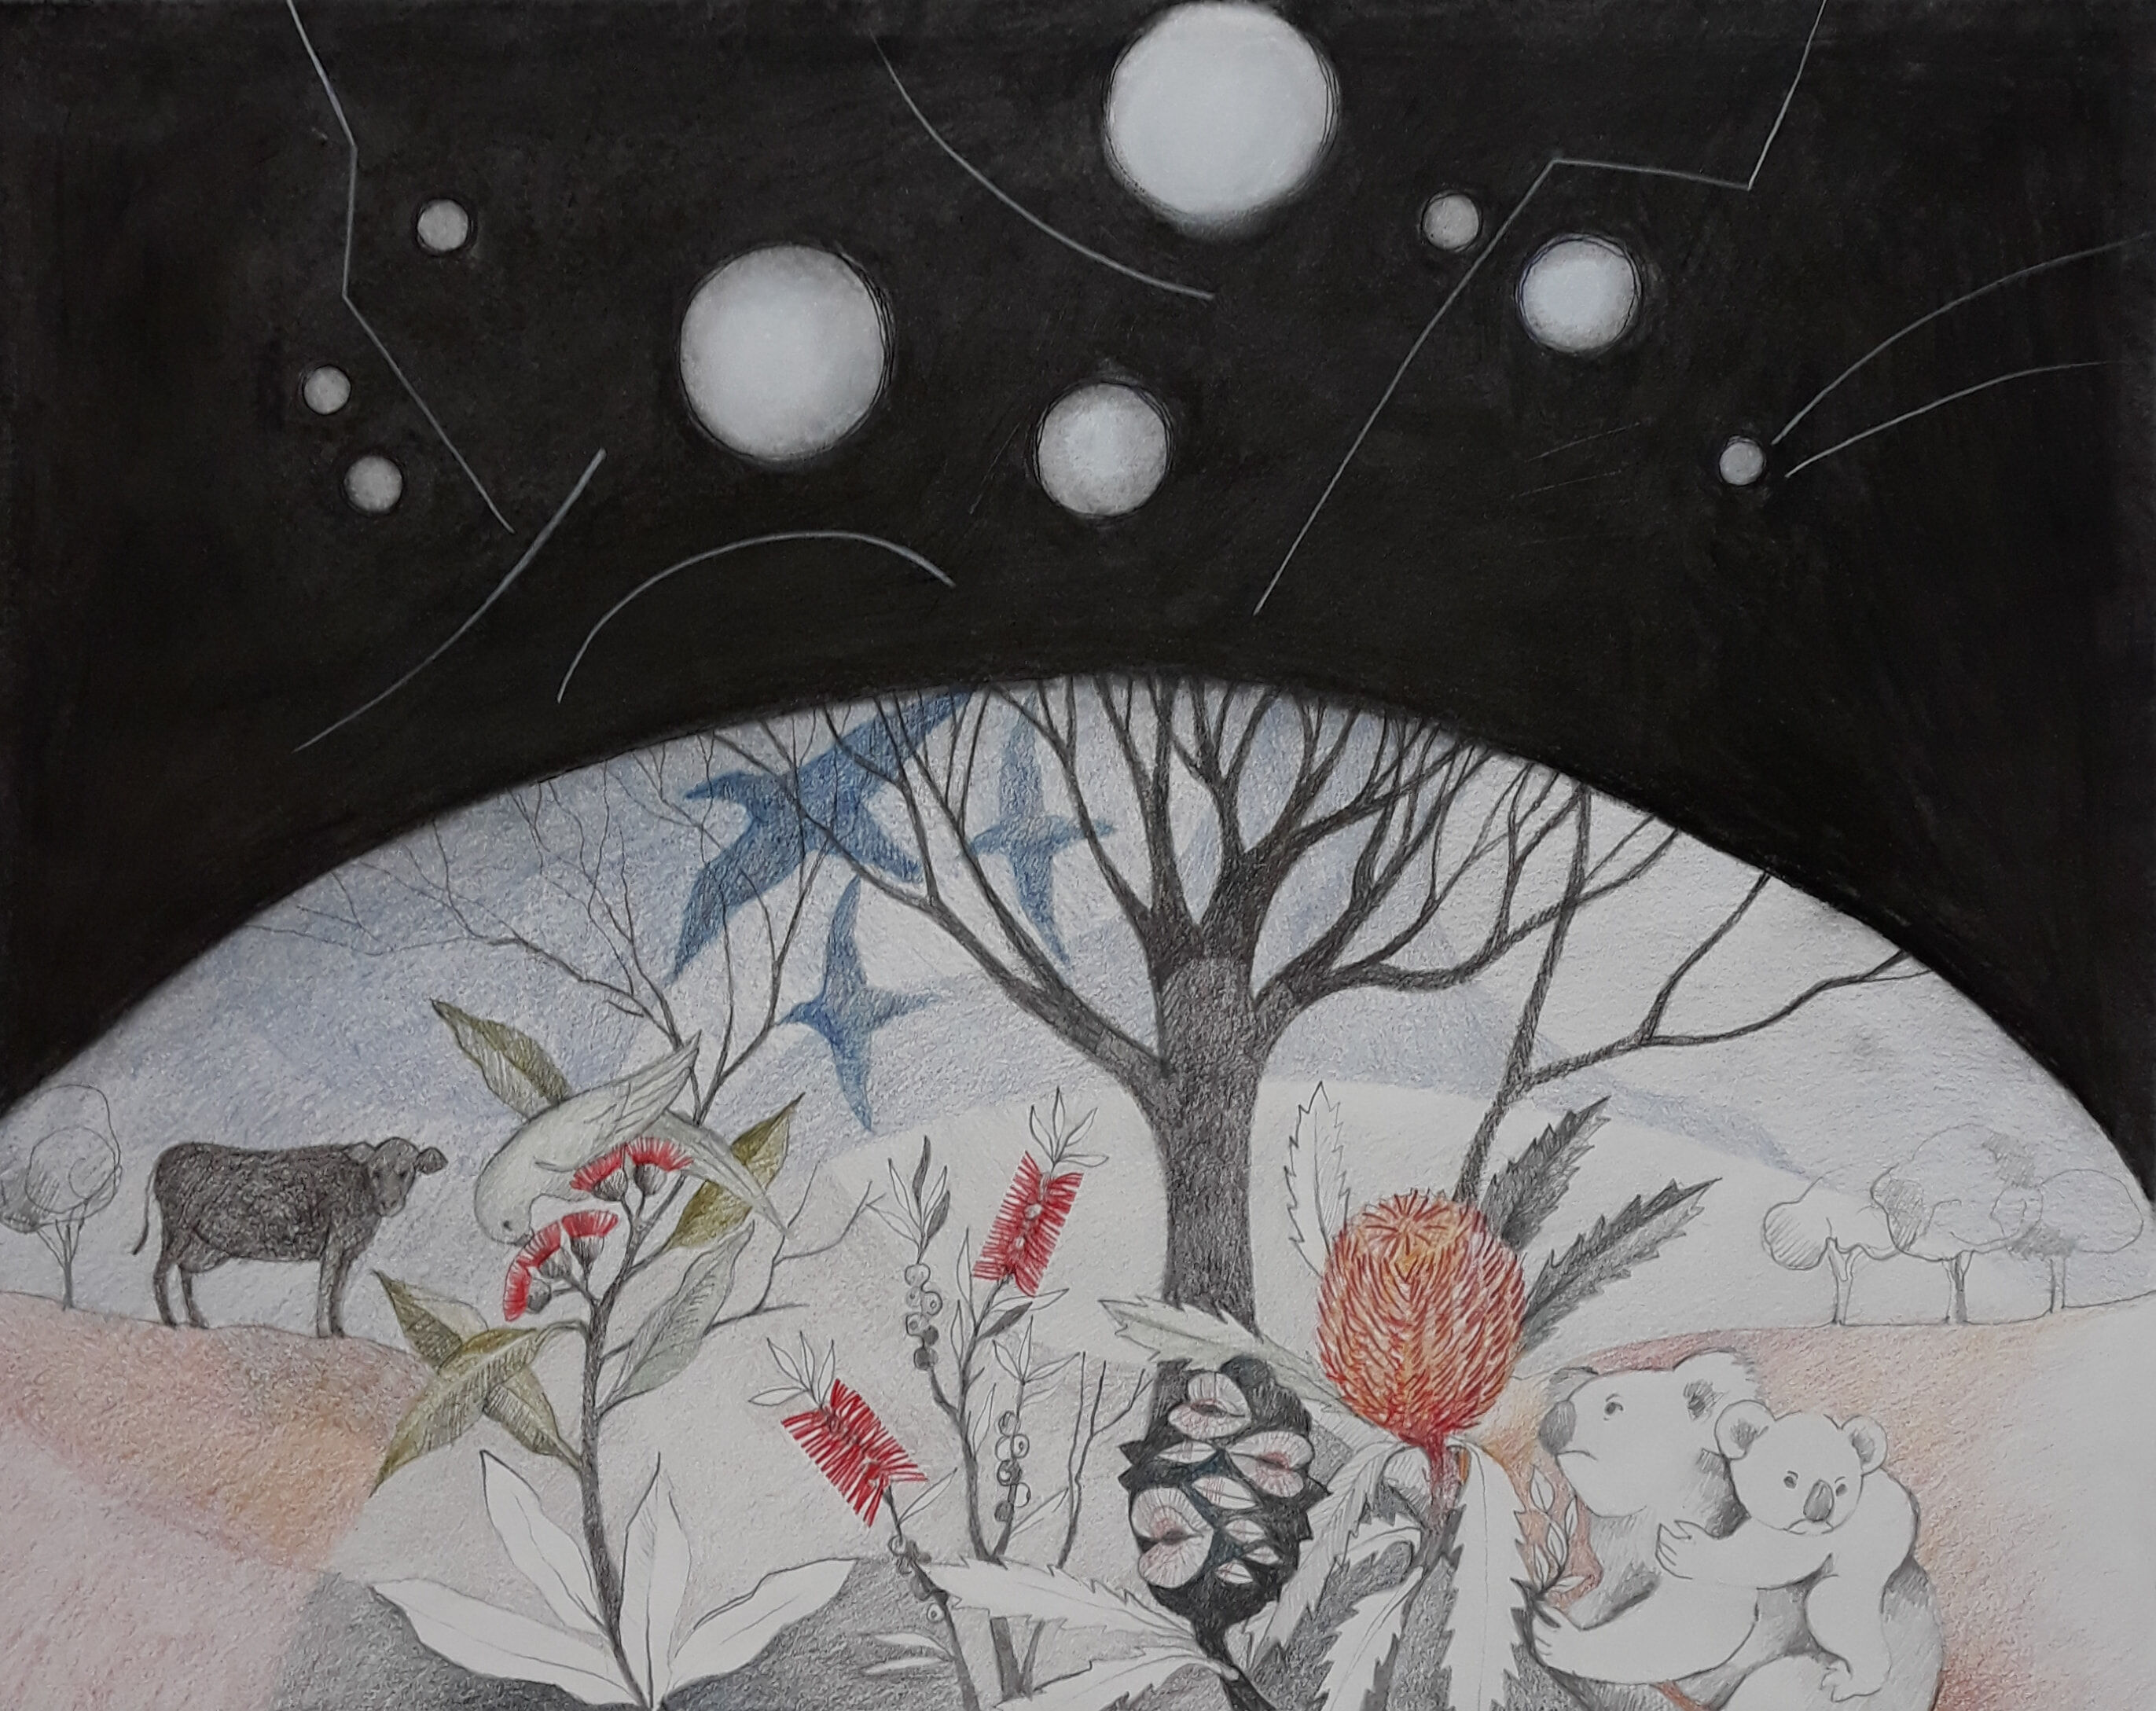 OUR WORLD - OTHER WORLDS - Unframed - Compressed charcoal and pencil - 56 x 45 cms - $400